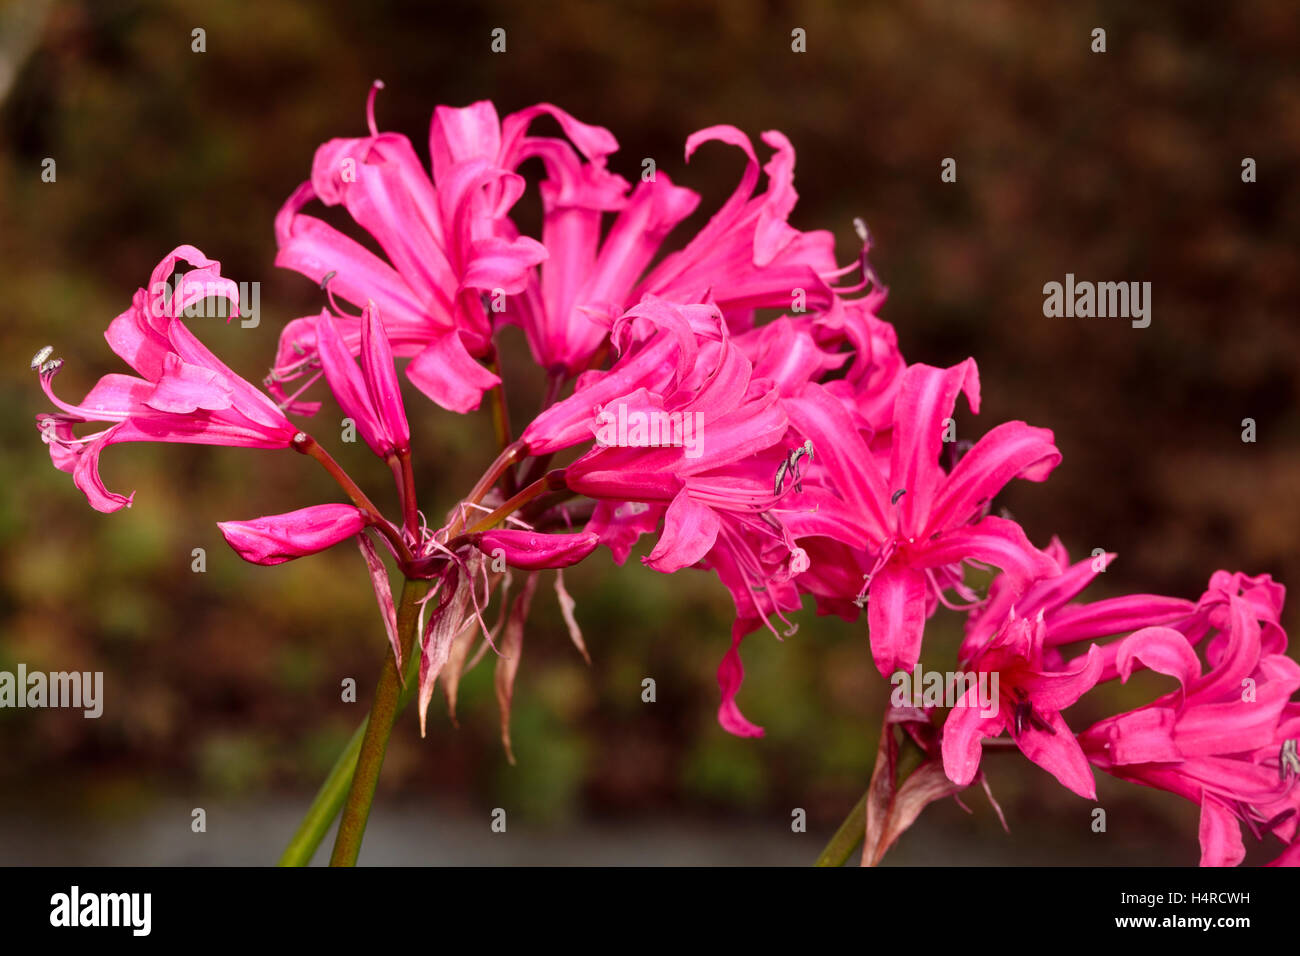 Red pink flowers of the vigorous autumn flowering hybrid south red pink flowers of the vigorous autumn flowering hybrid south african bulb nerine zeal giant mightylinksfo Gallery